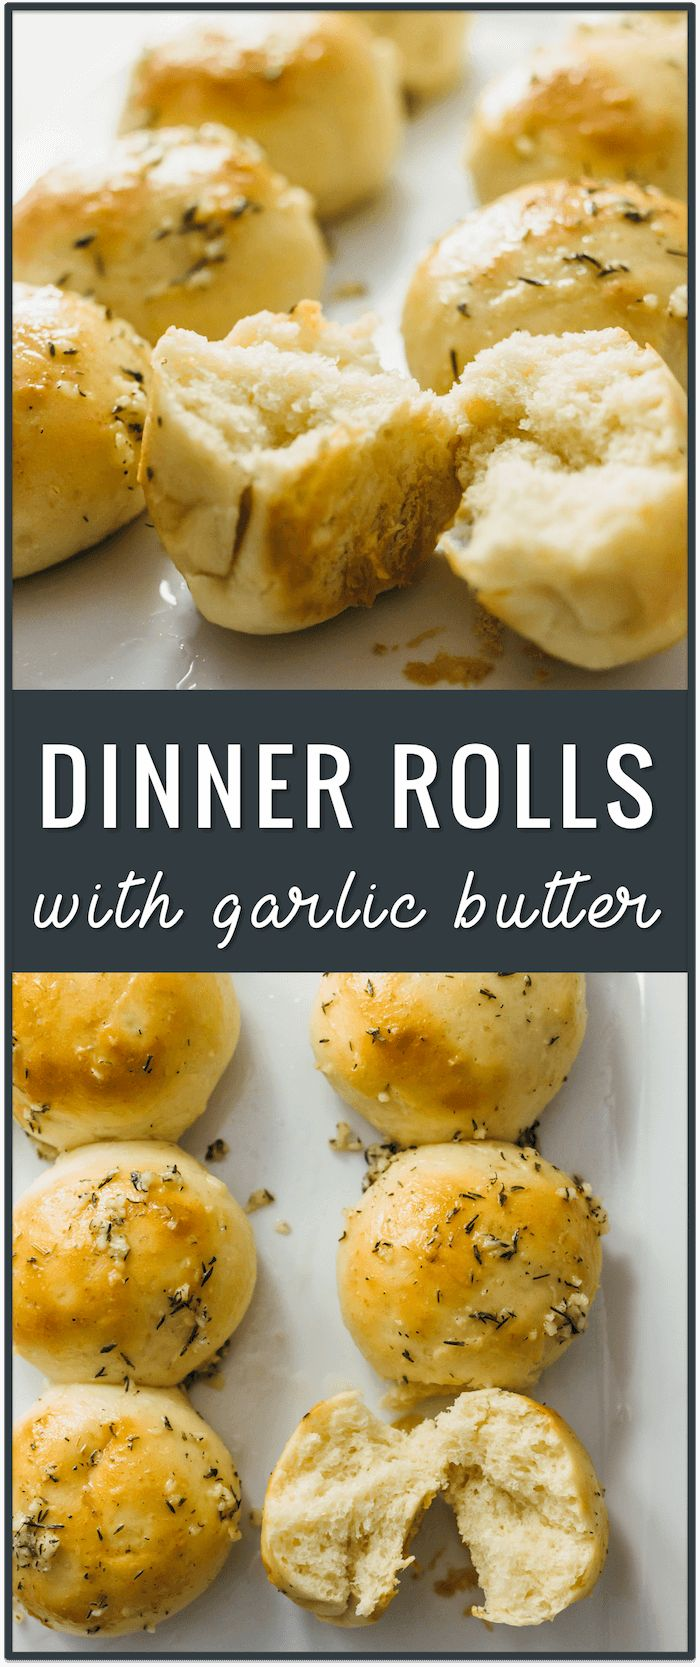 Small batch dinner rolls with garlic butter, homemade dinner rolls, easy dinner rolls, quick dinner rolls, sweet dinner rolls, best dinner rolls, soft dinner rolls, fluffy dinner rolls, healthy dinner rolls, small loaf bread recipe, dinner rolls for two, one hour, make ahead, bread machine via @savory_tooth